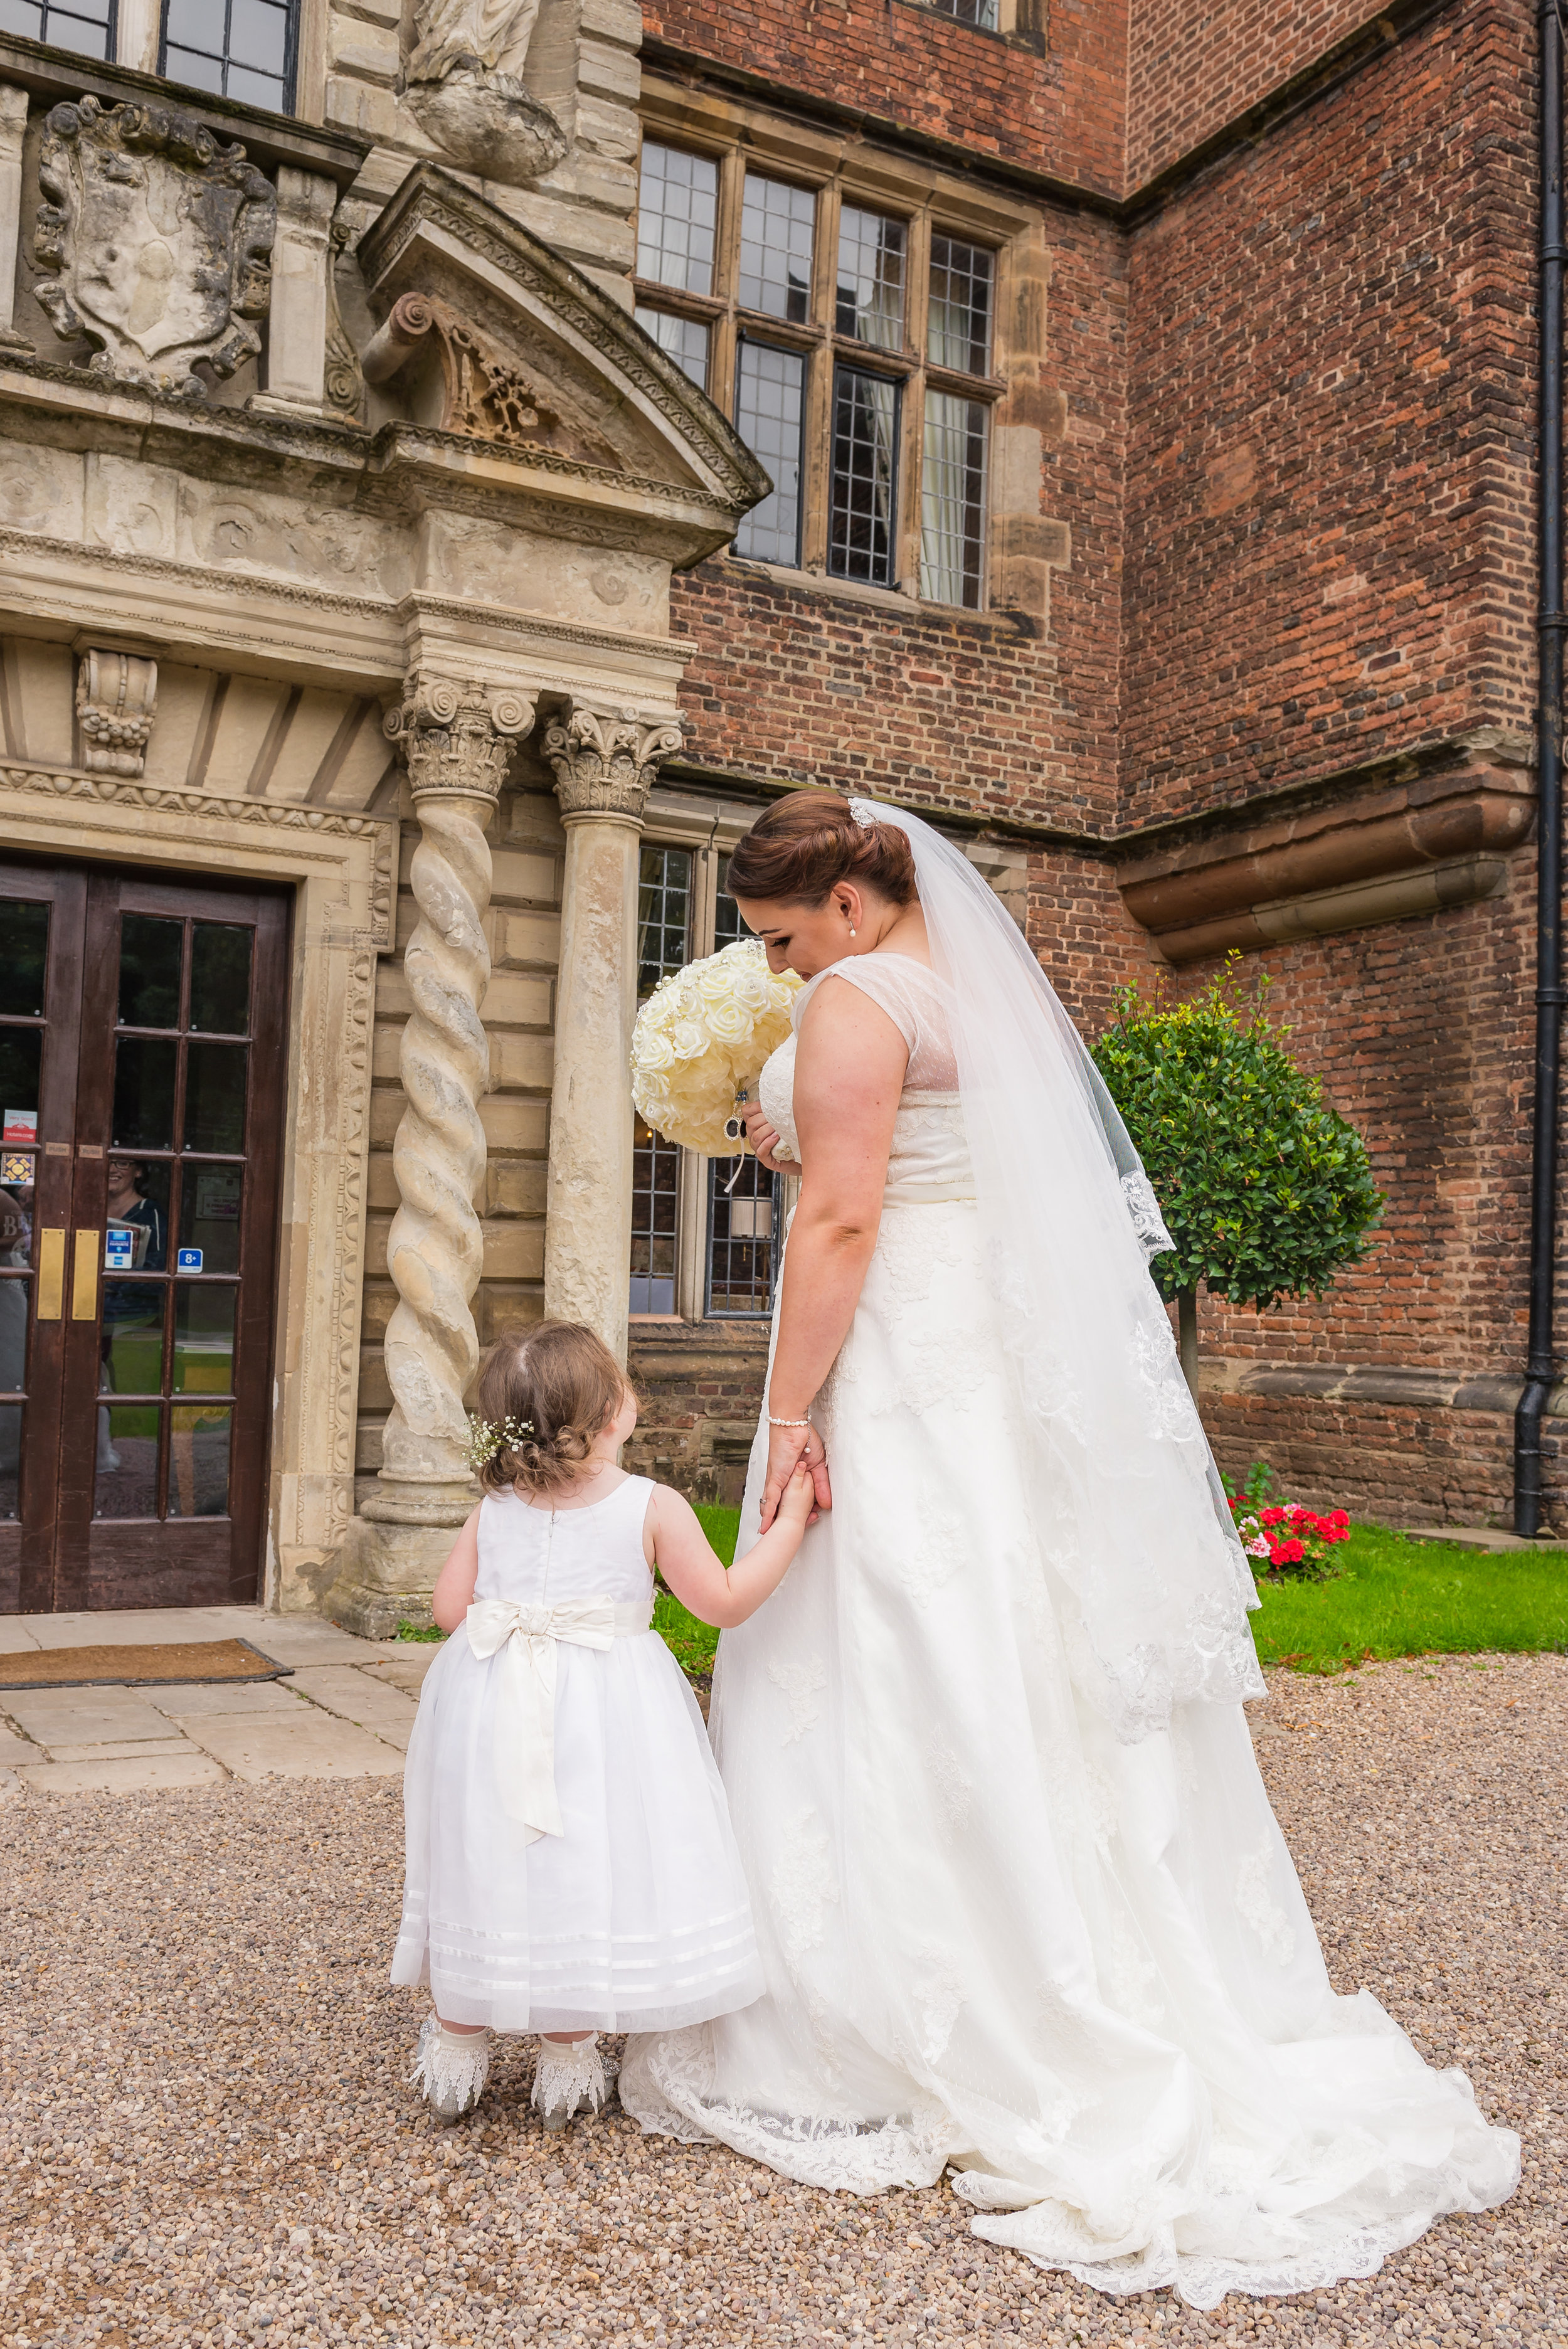 castle Bromwich hall hotel wedding photography one day my beautiful daughter it will be your turn